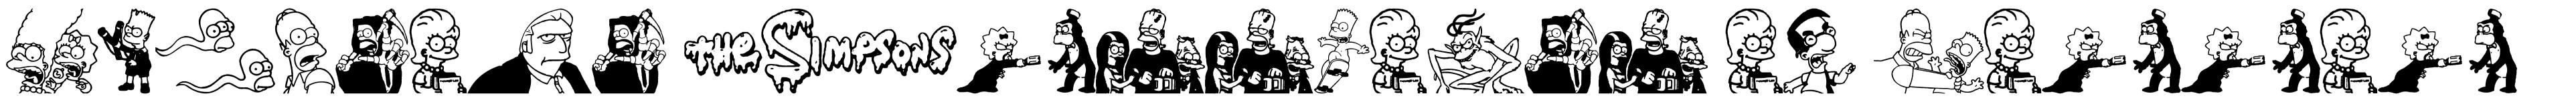 Simpsons Treehouse of Horror font